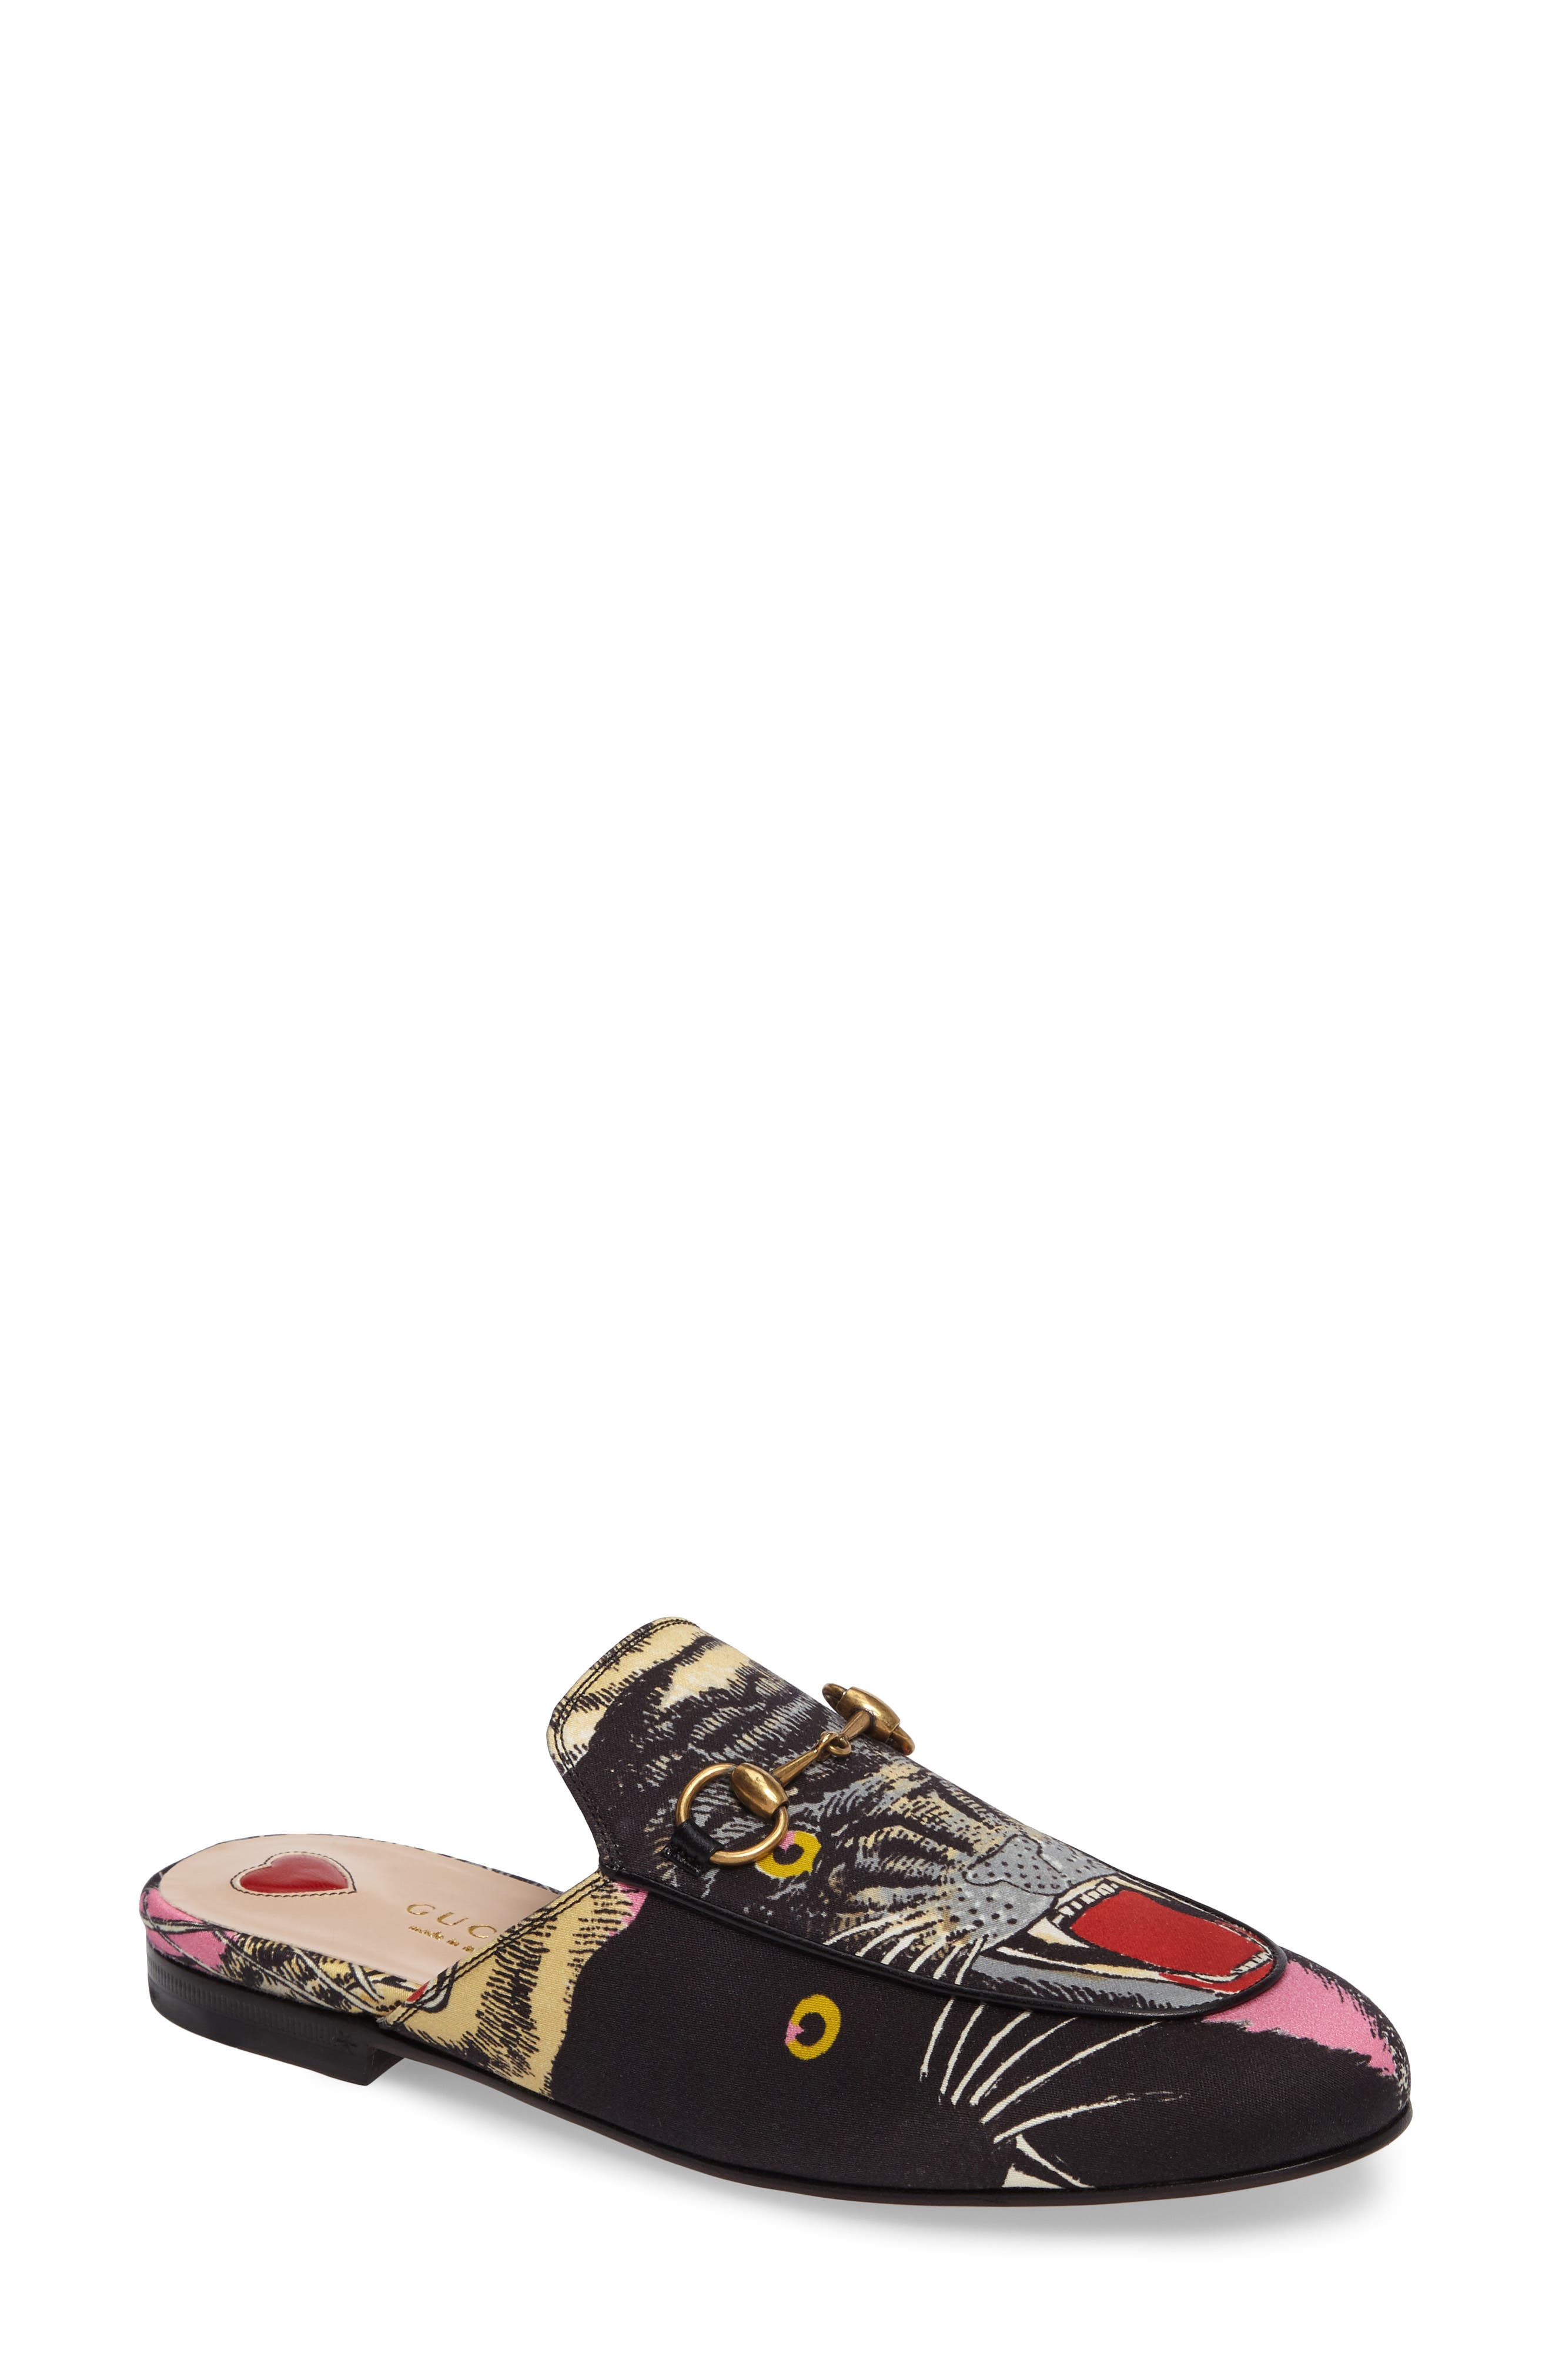 Princetown Angry Cat Mule Loafer,                         Main,                         color, 002